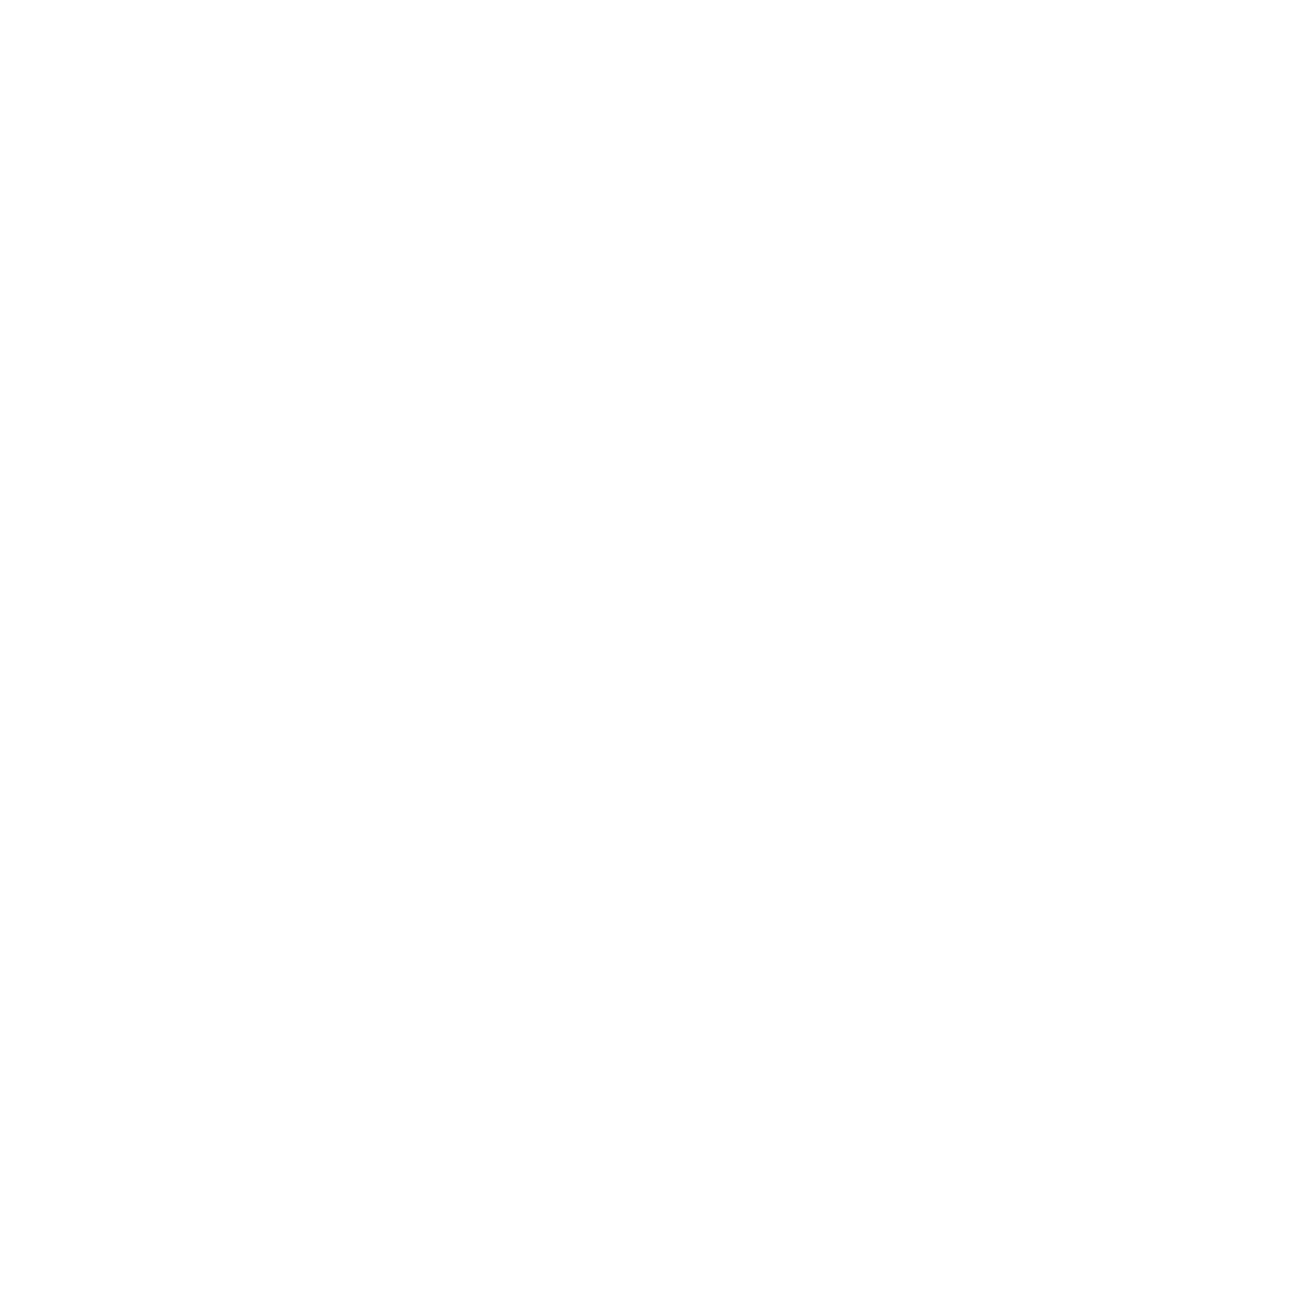 Reachout Church